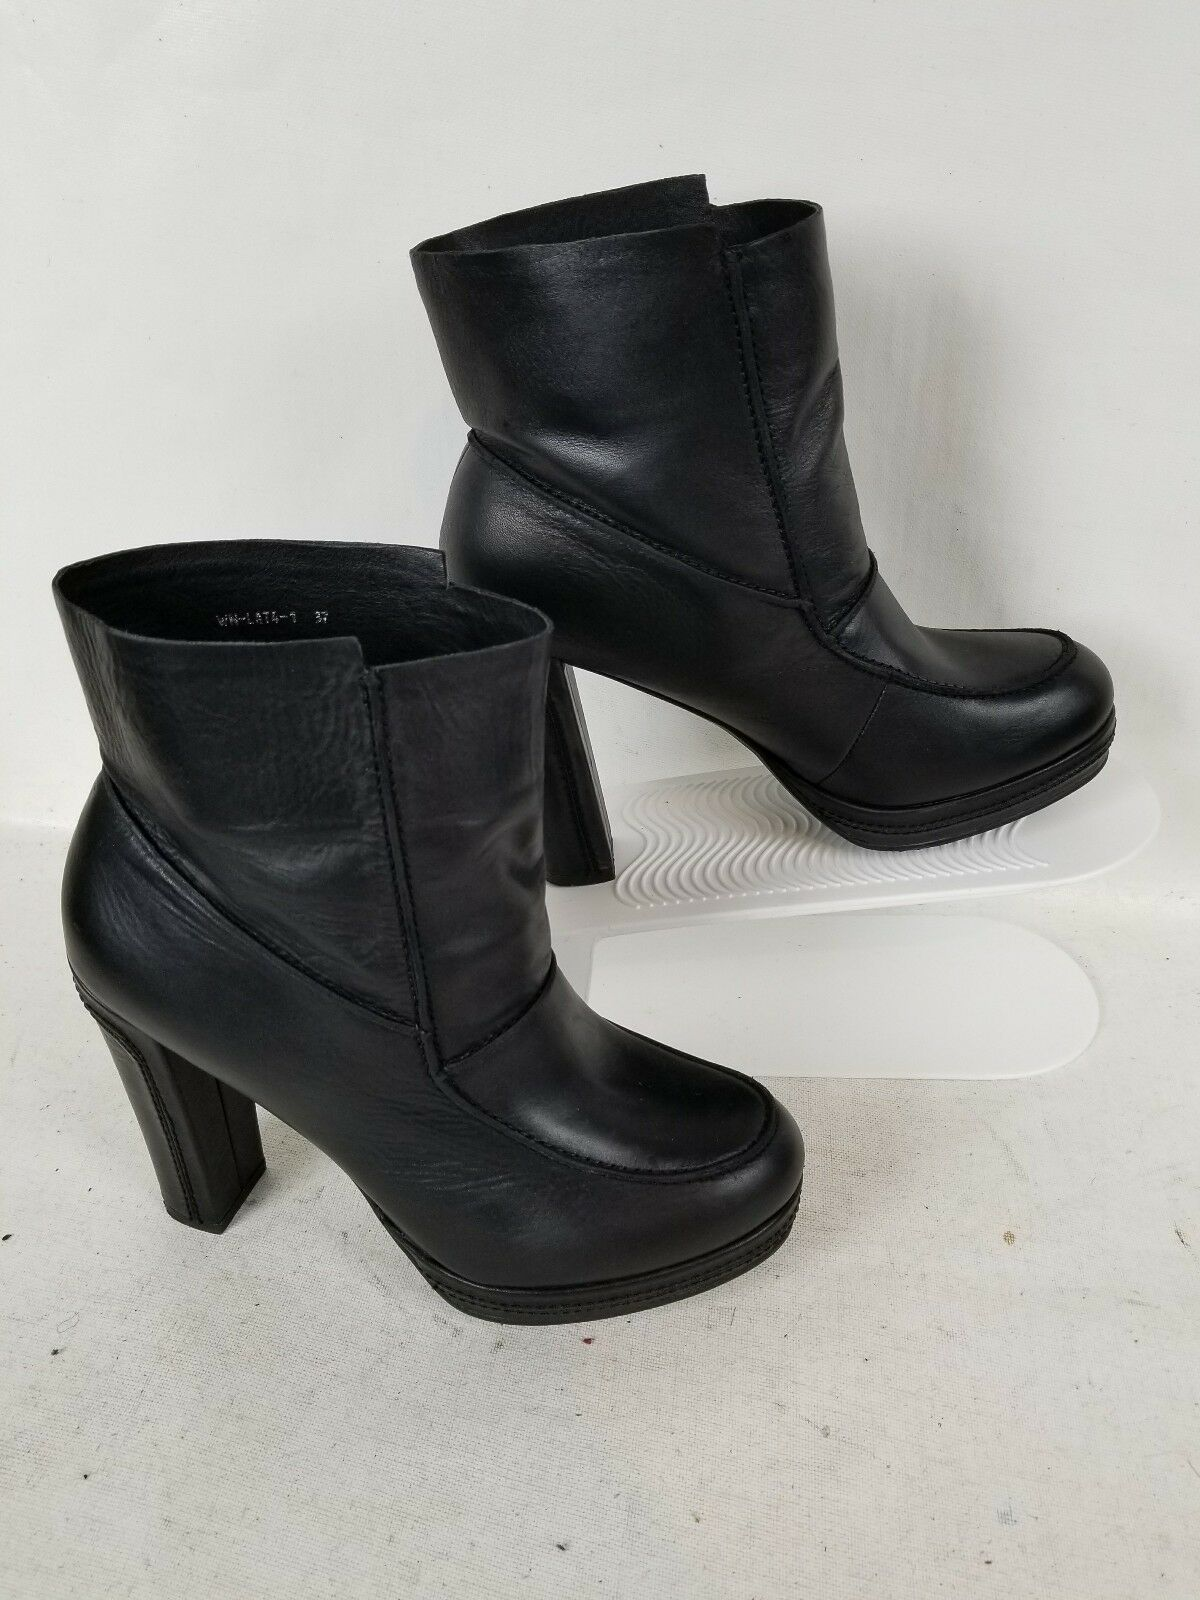 CARLO PAZOLINI ANKLE HIGH HEEL SOFT CUSHION BLACK LEATHER WORK BOOT SIZE 37 US 6